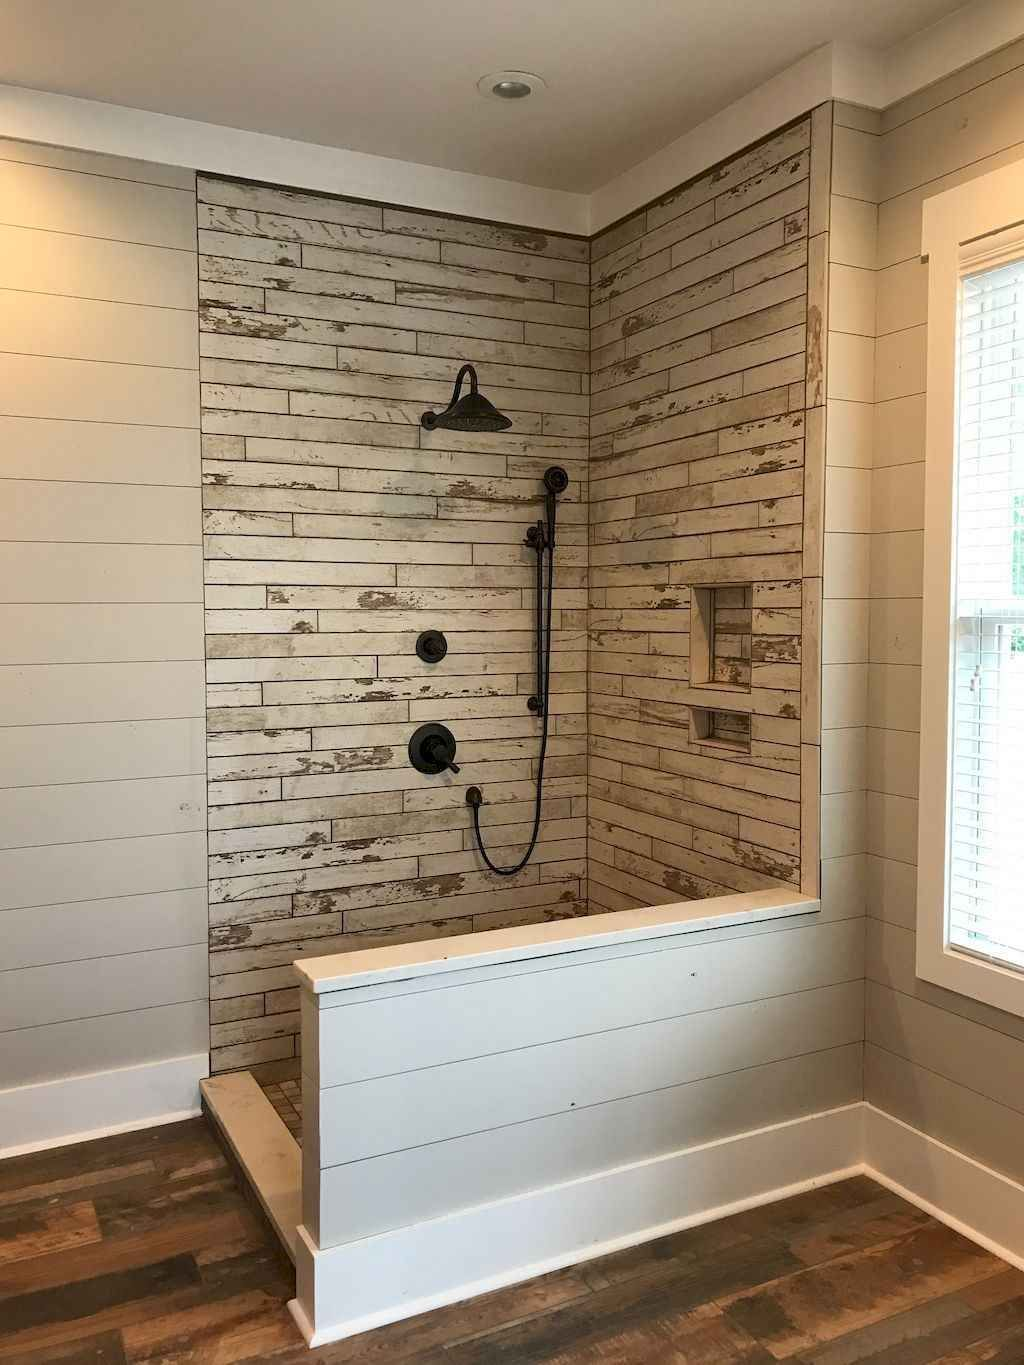 80 Awesome Farmhouse Tile Shower Decor Ideas (9) - LivingMarch.com #bathroomtileshowers